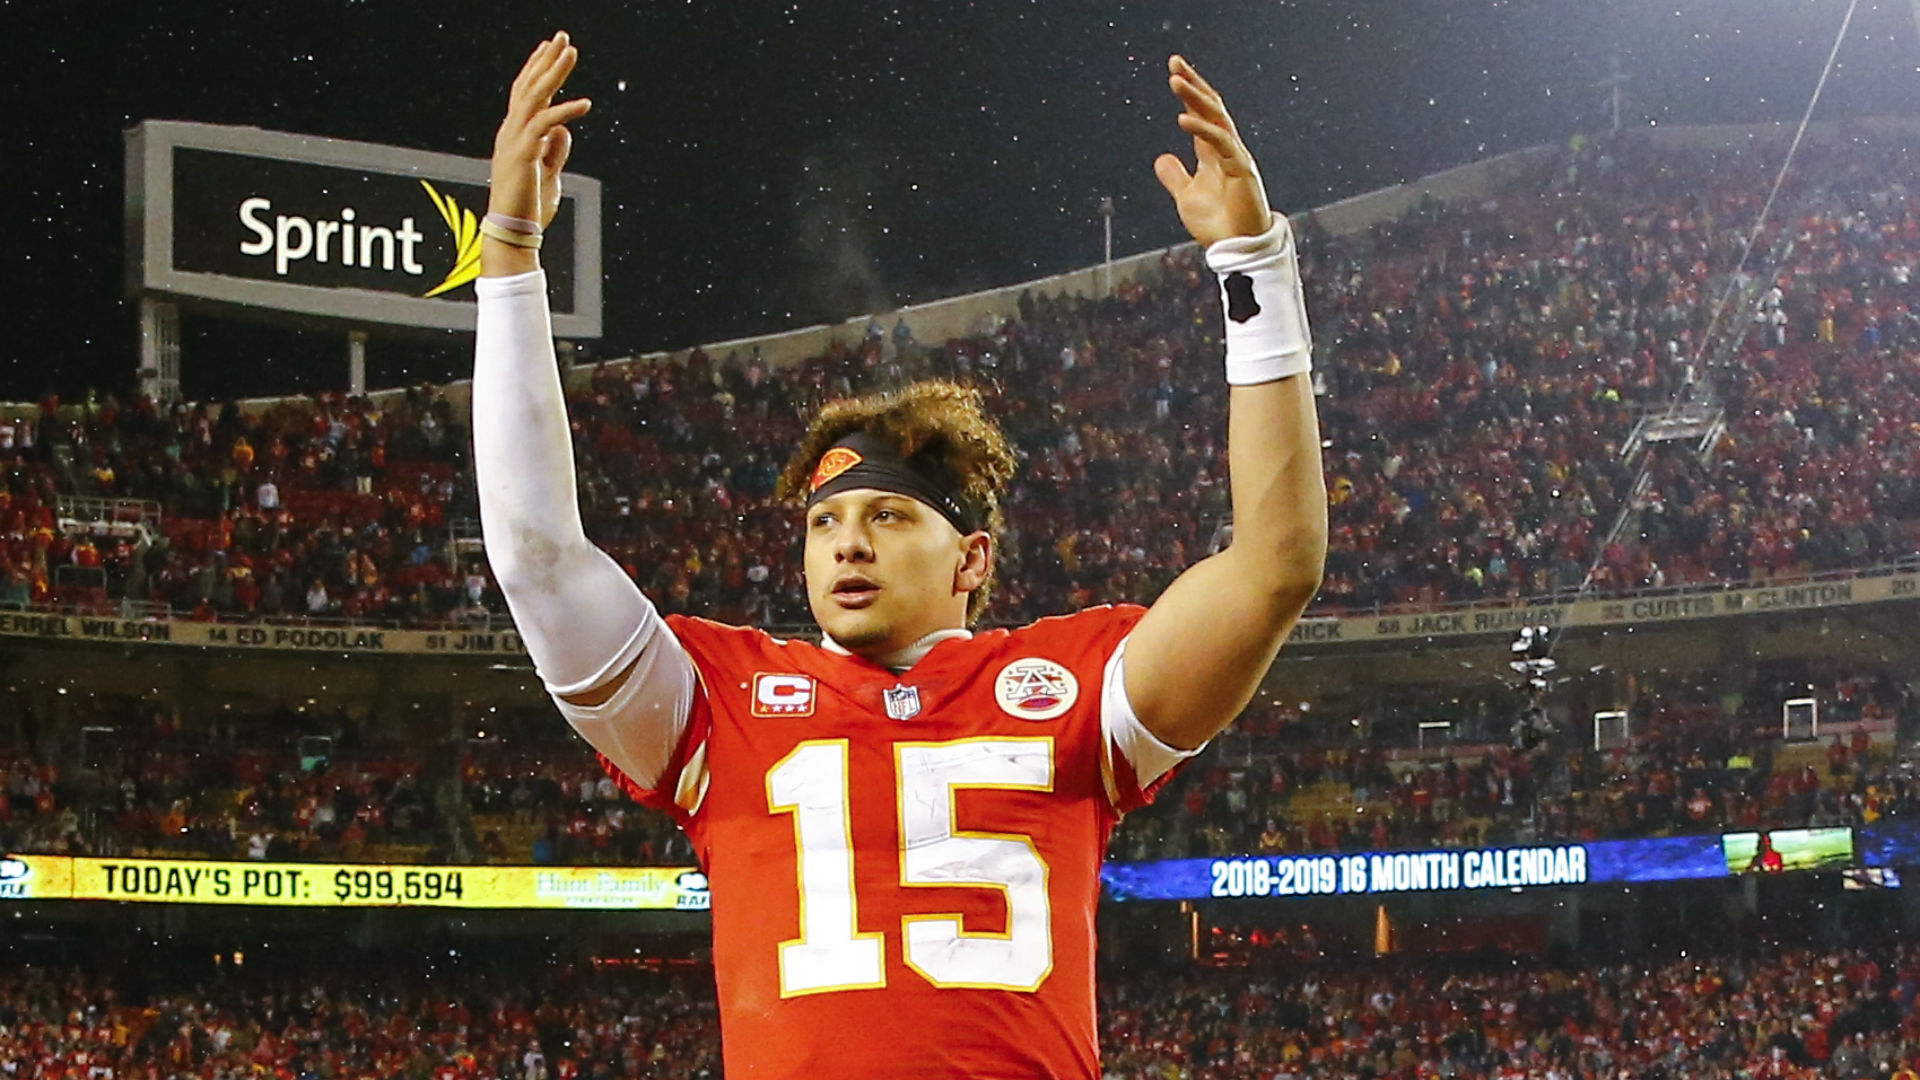 Mahomes expected to sign record deal in 2020